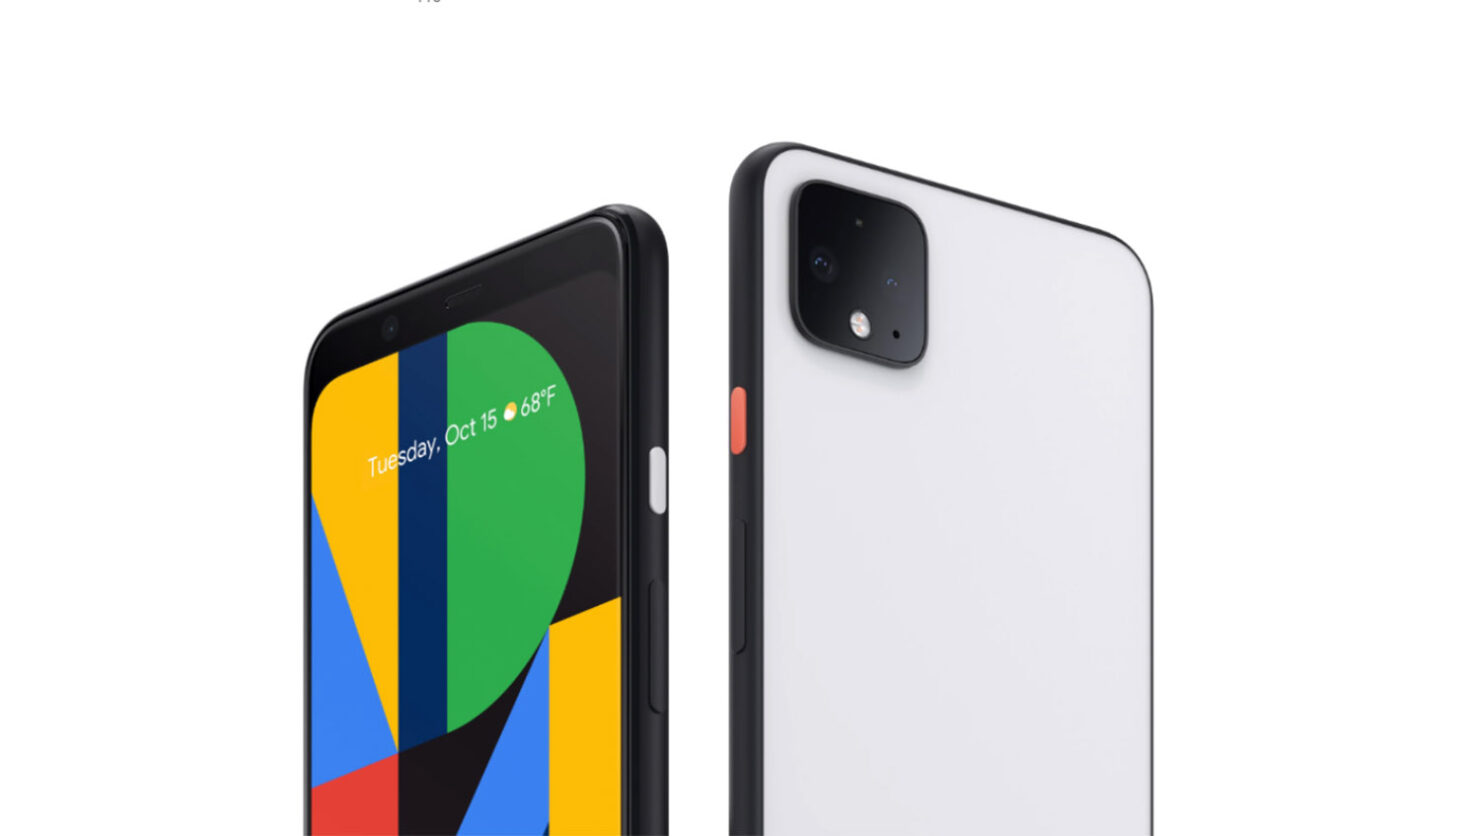 Google's Pixel 4 & Pixel 4 XL Both Become an Even Better Deal With This Latest $200 Price Cut